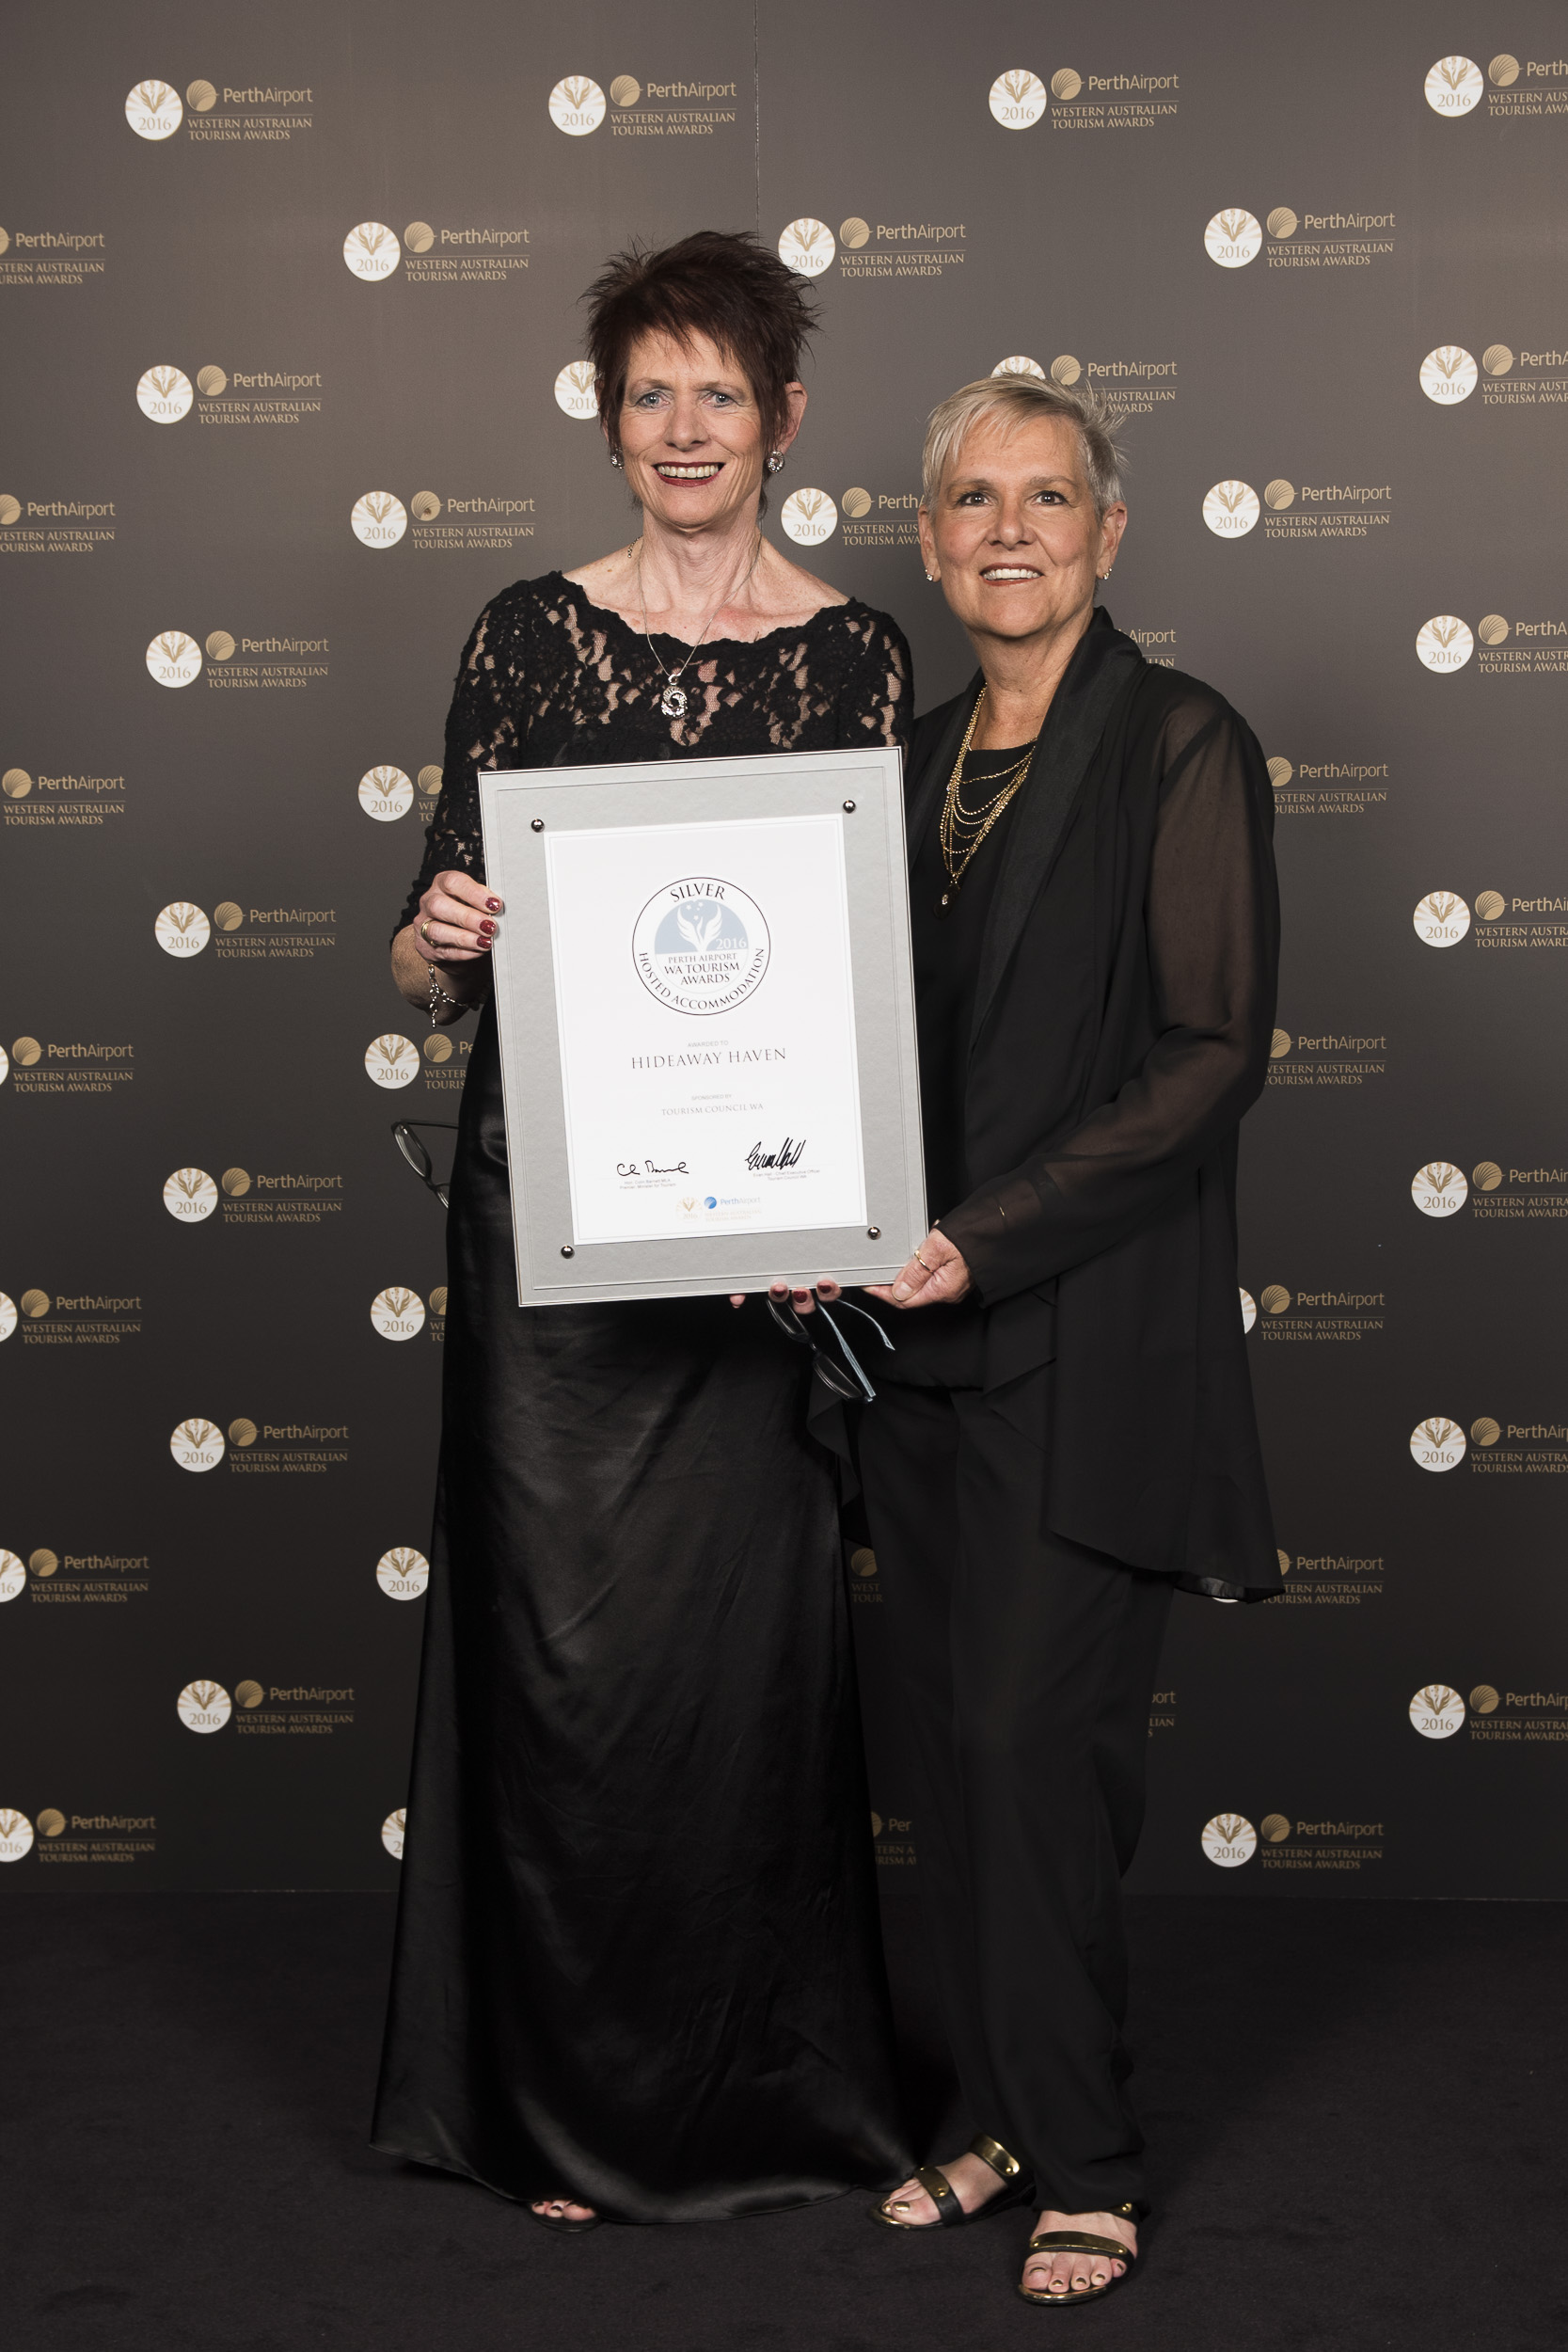 Silver at the 2016 WA Tourism Awards for HideAway Haven